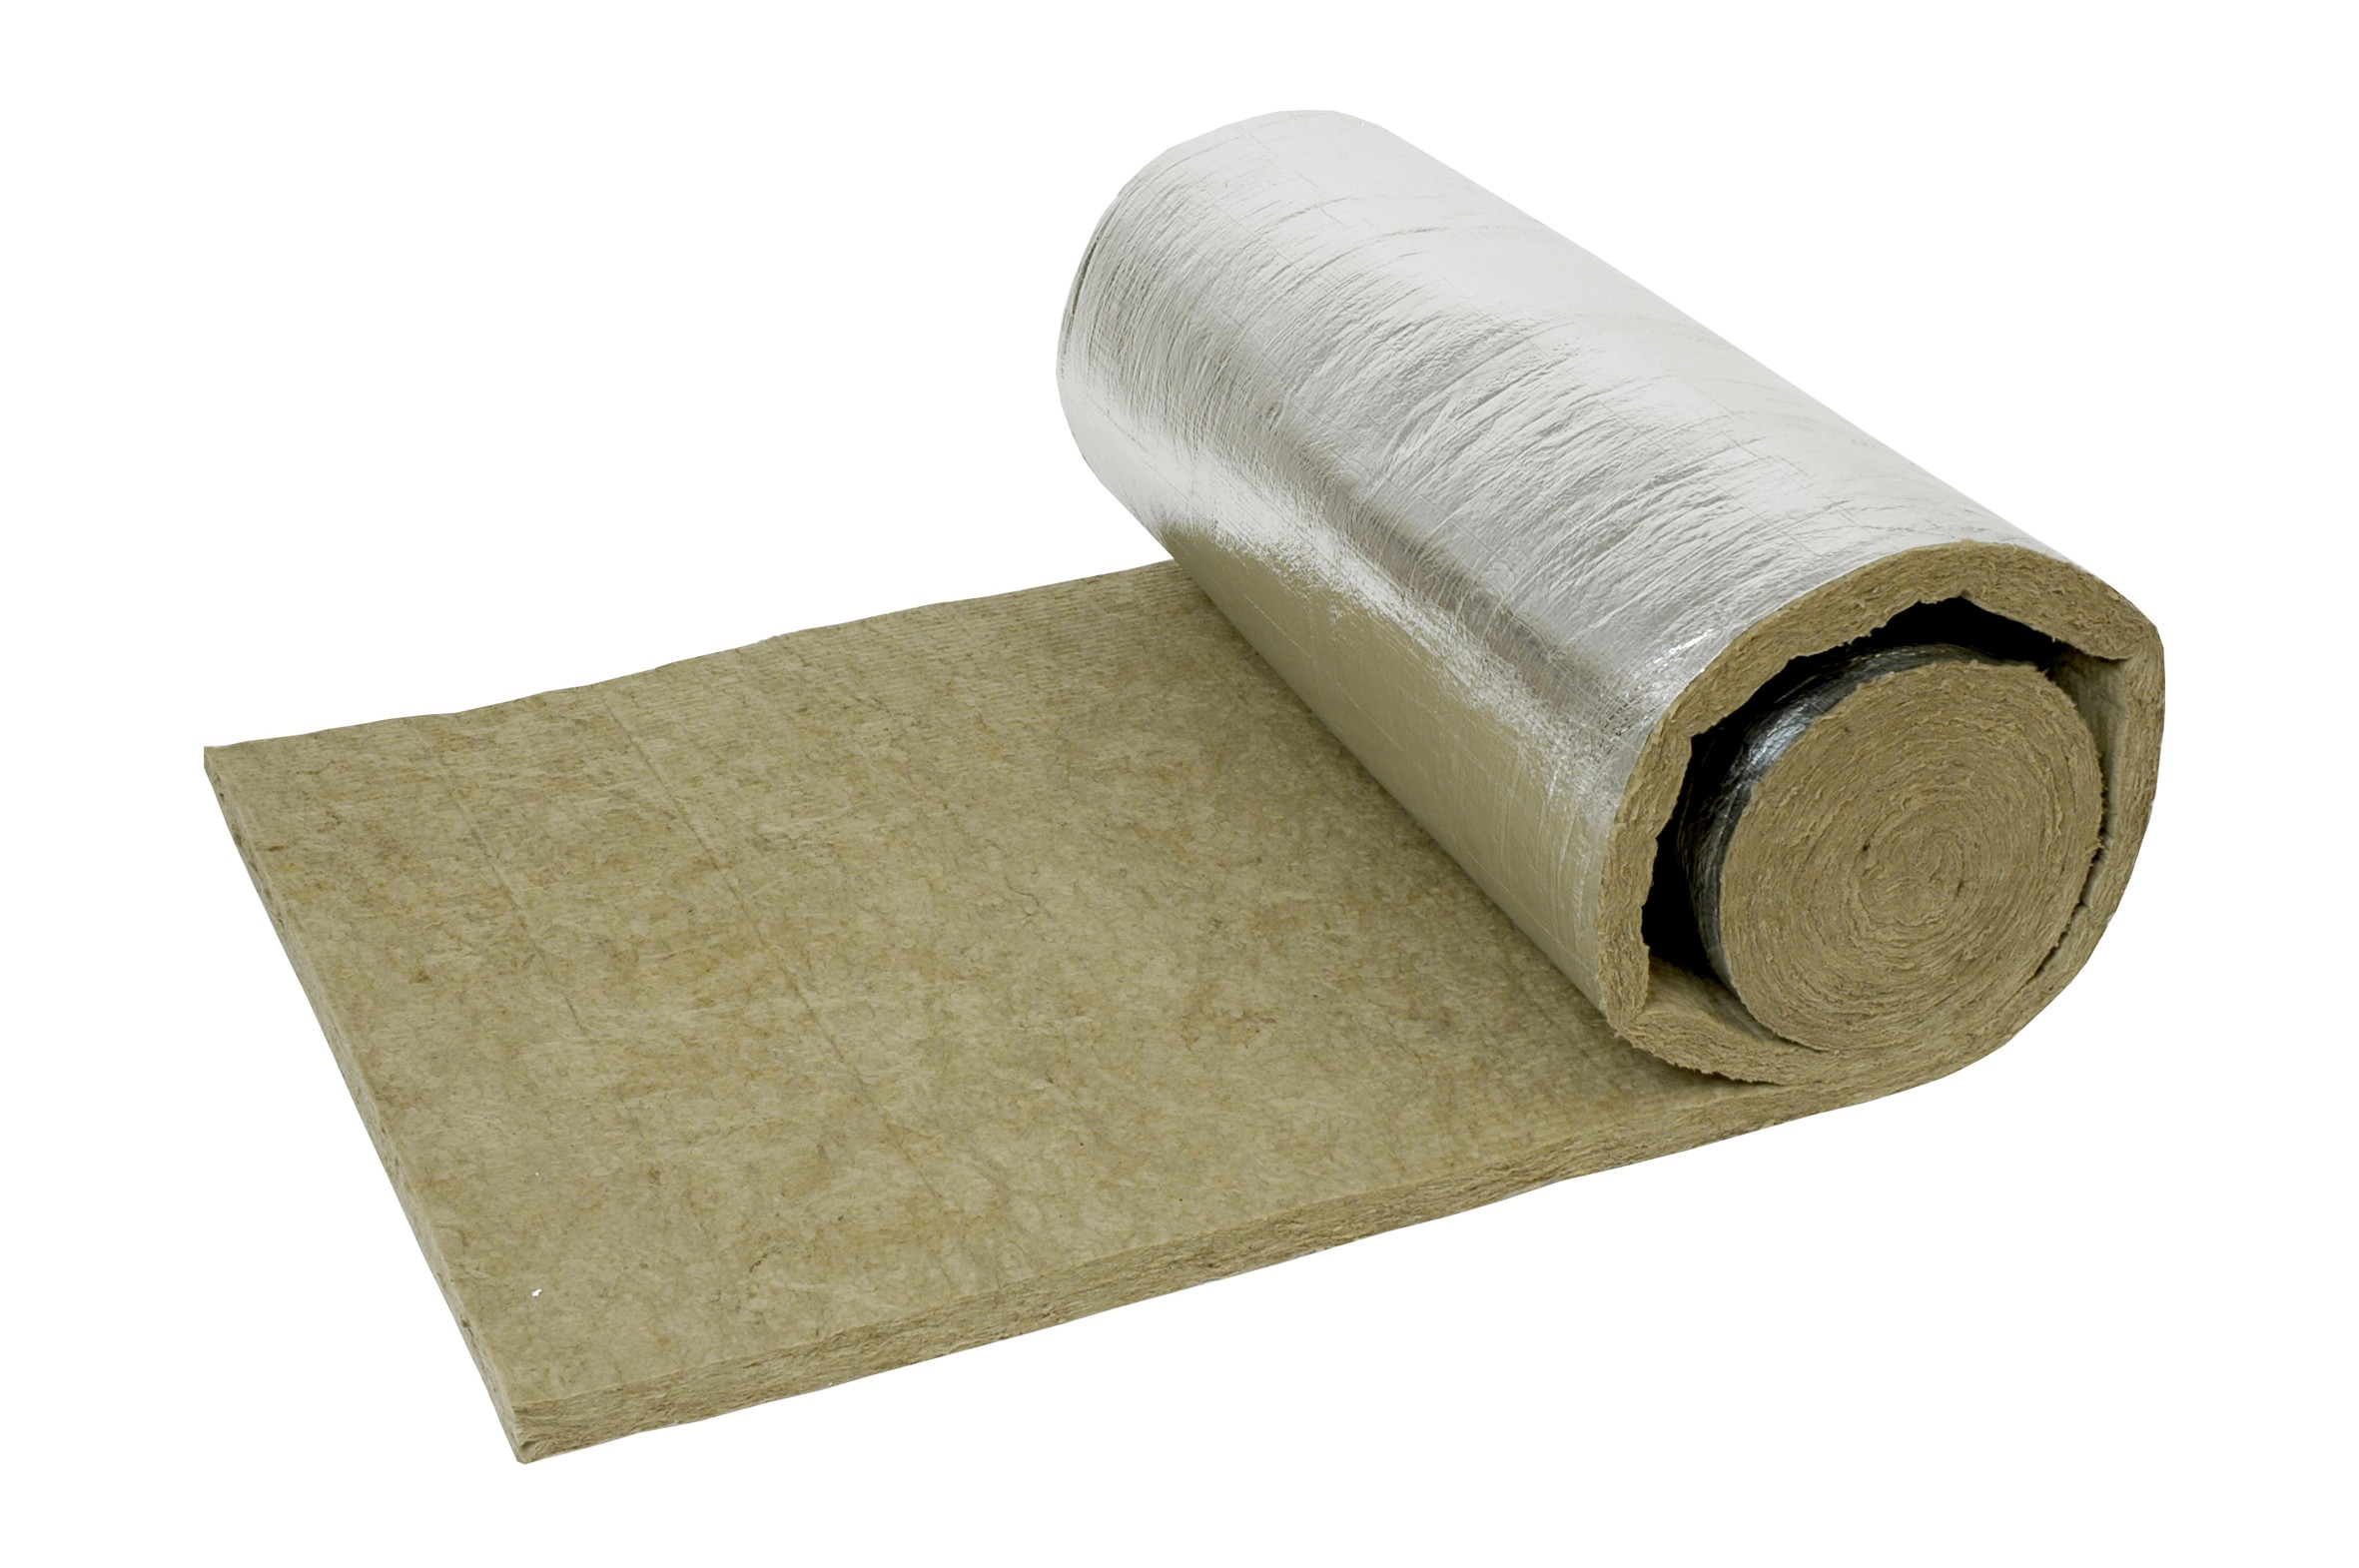 Armaflex Insulation Knauf Pipe Insulation And Rockwool